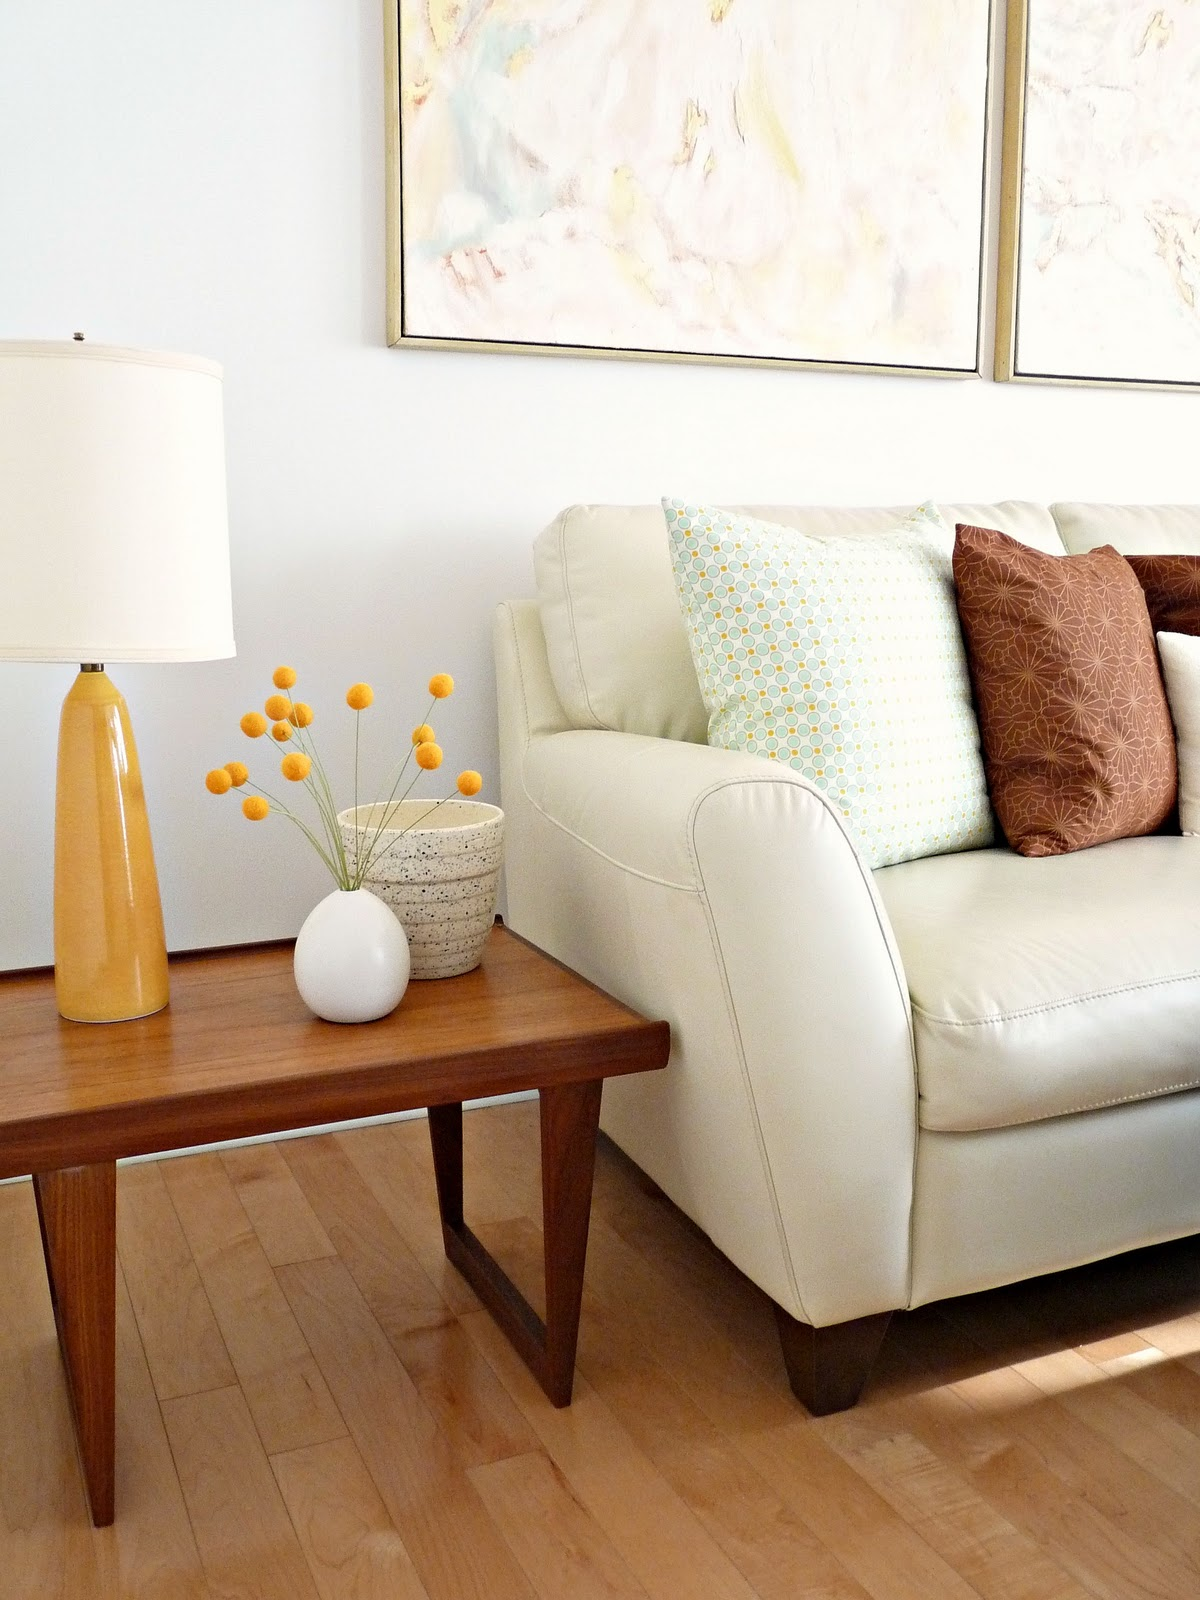 coffee accent tables side for small spaces dark brown polished wood table living room white fabric cushion sofa with base and legs light pastel pale sky blue lines stripes pillow